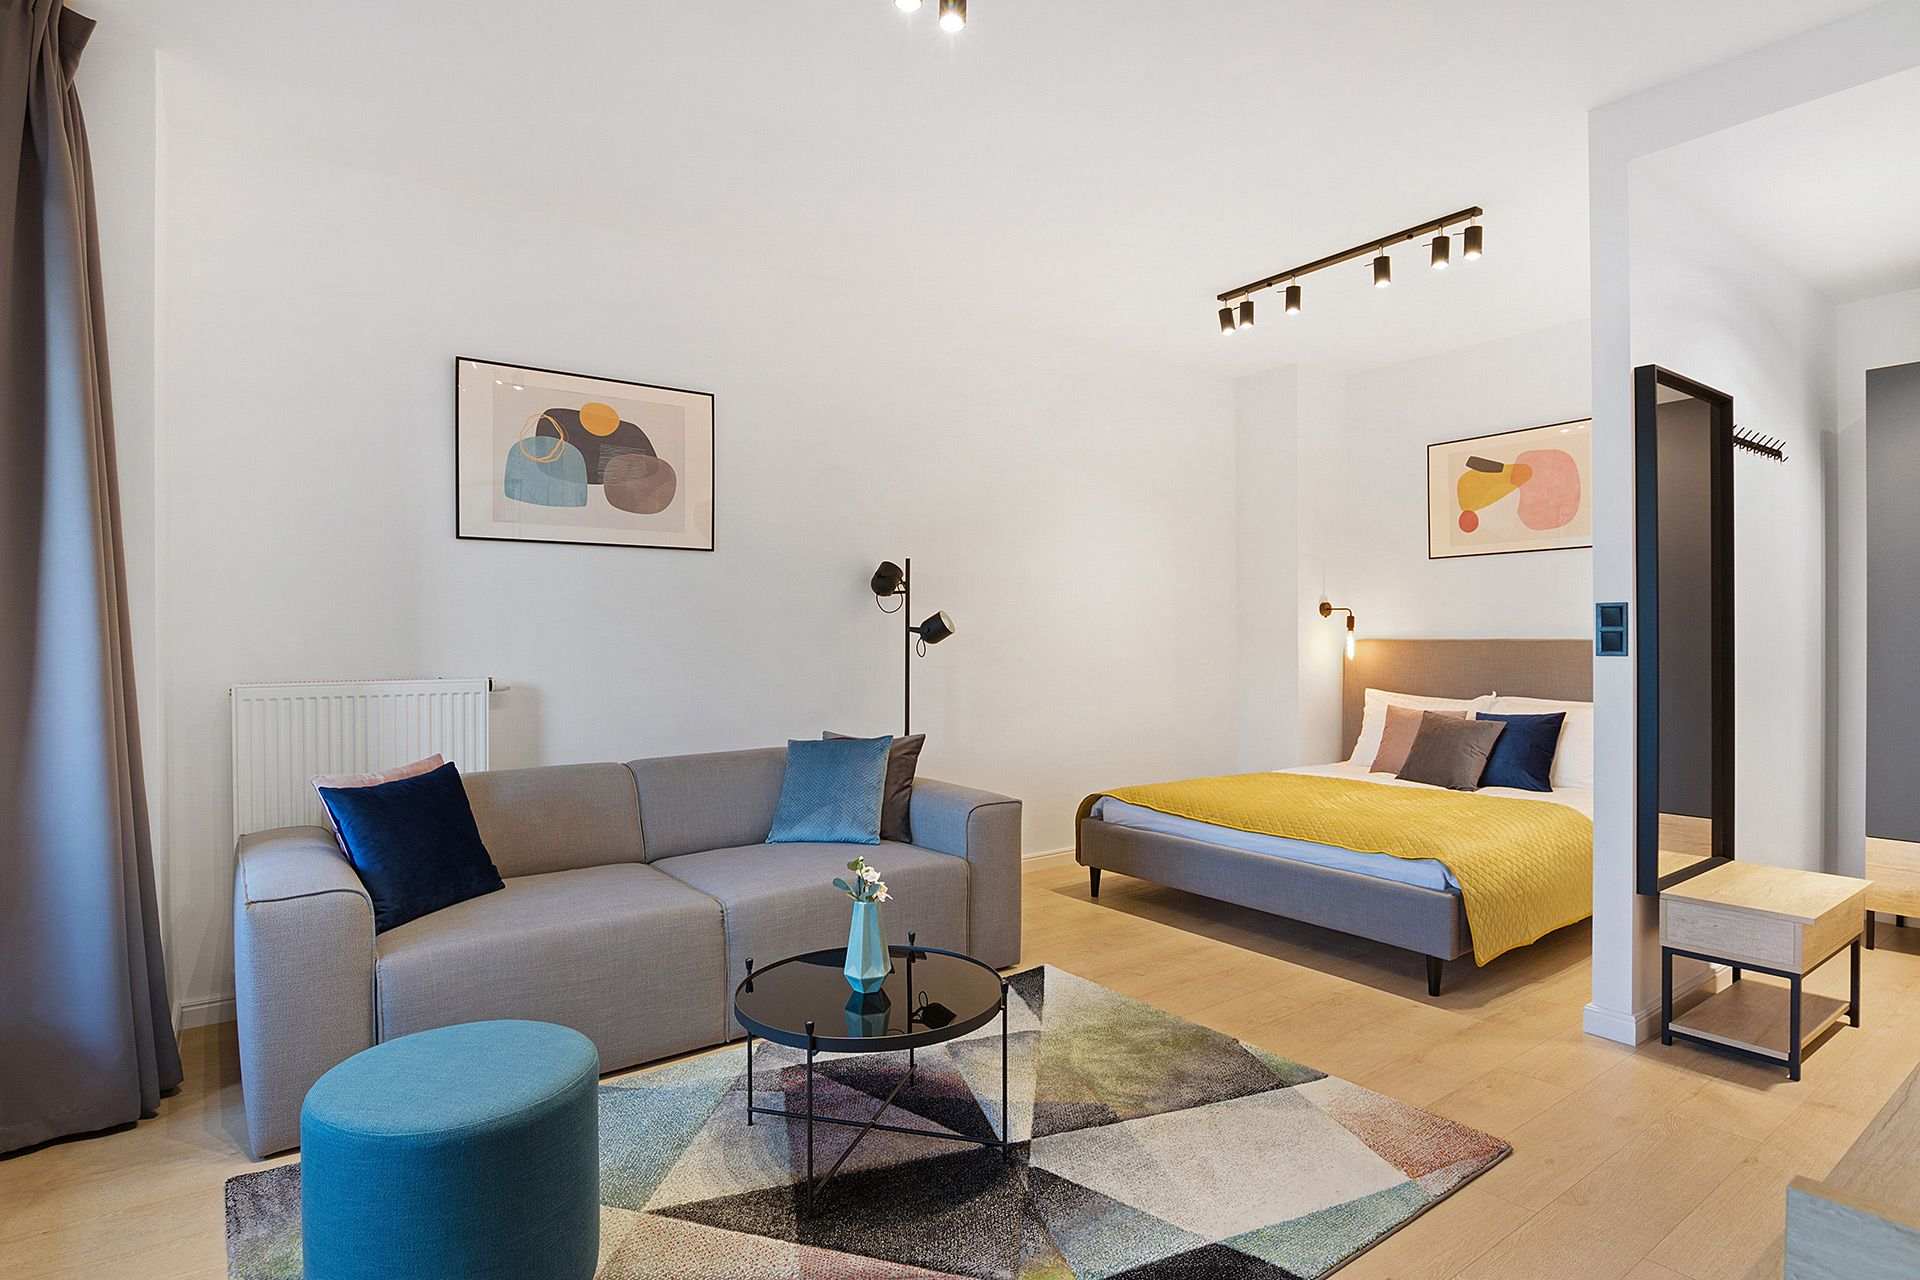 Studio - Medium apartment to rent in Warsaw UPR-A-031-2